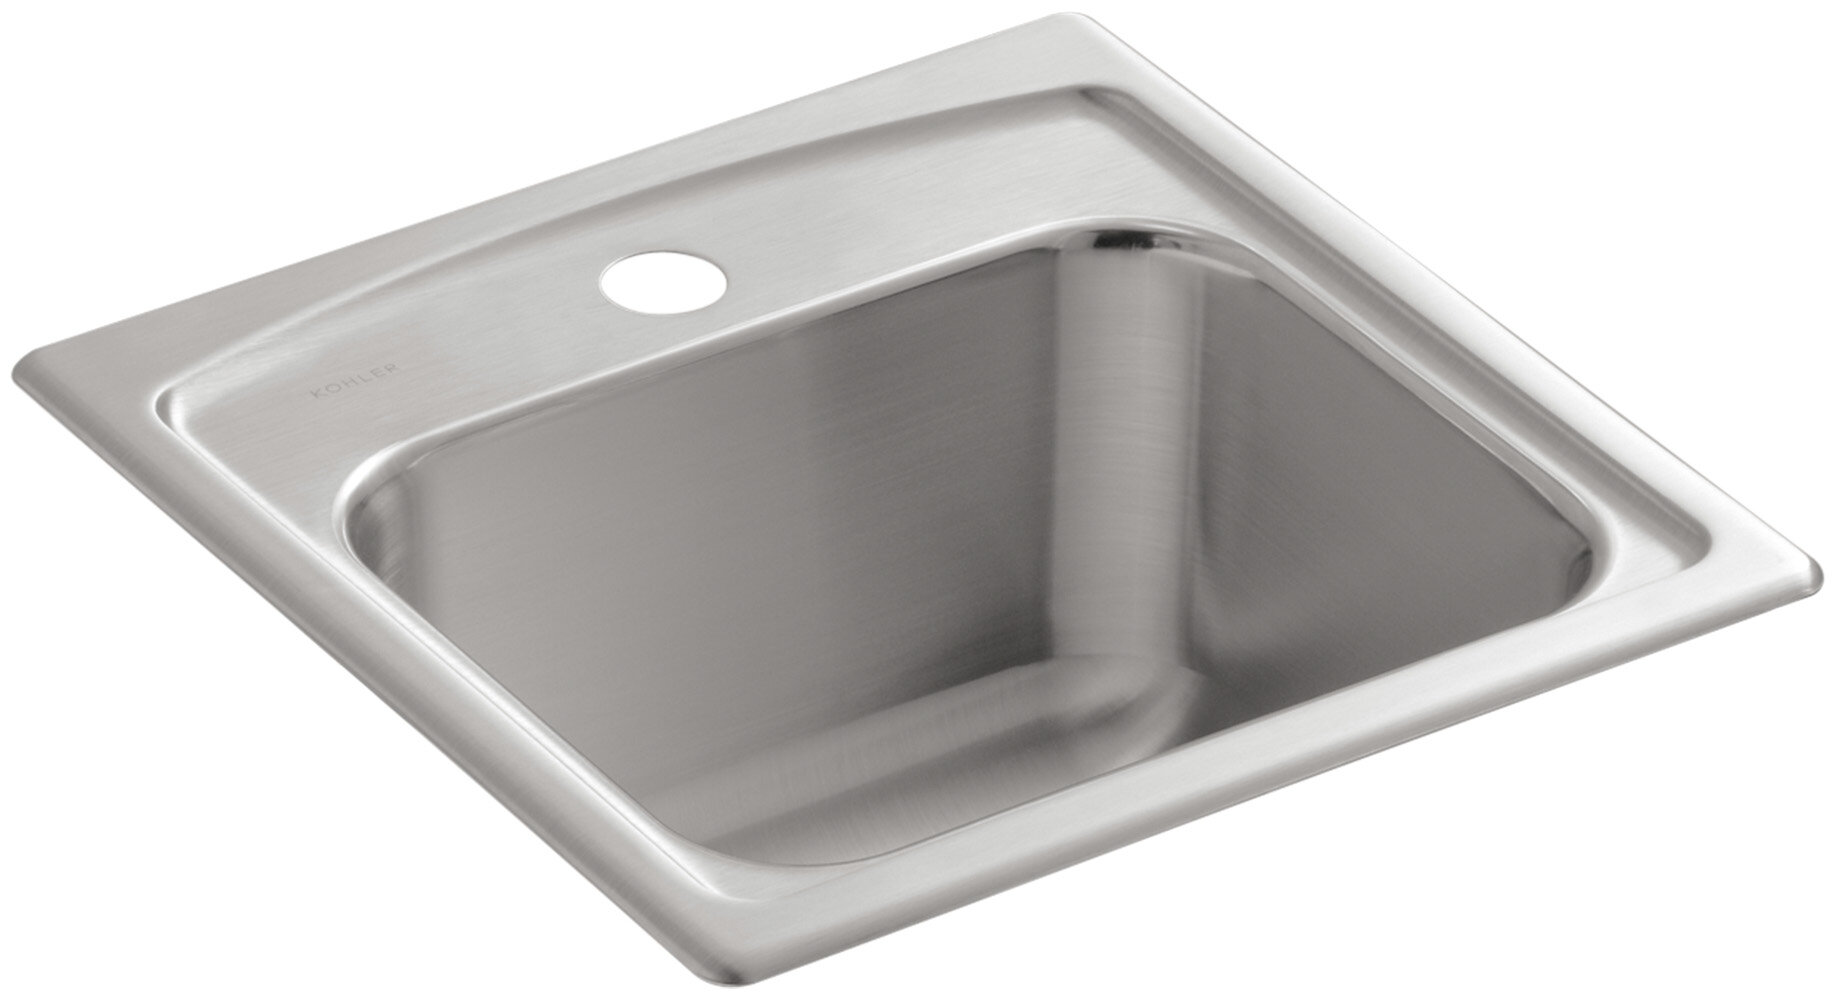 K-3349-1-NA Kohler Toccata Top-Mount Bar Sink with Single Faucet ...